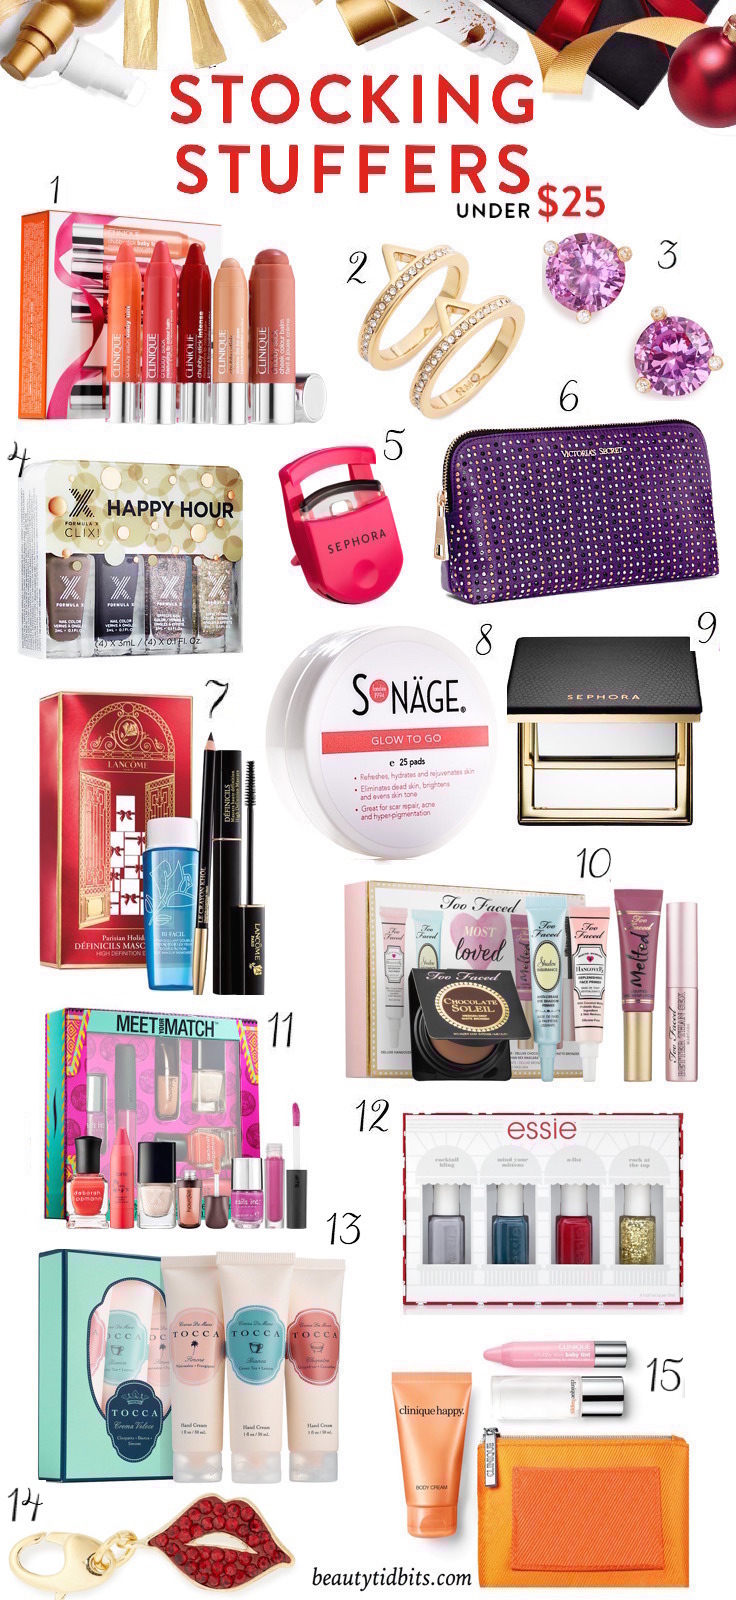 Beauty-Stocking-stuffers-under-25